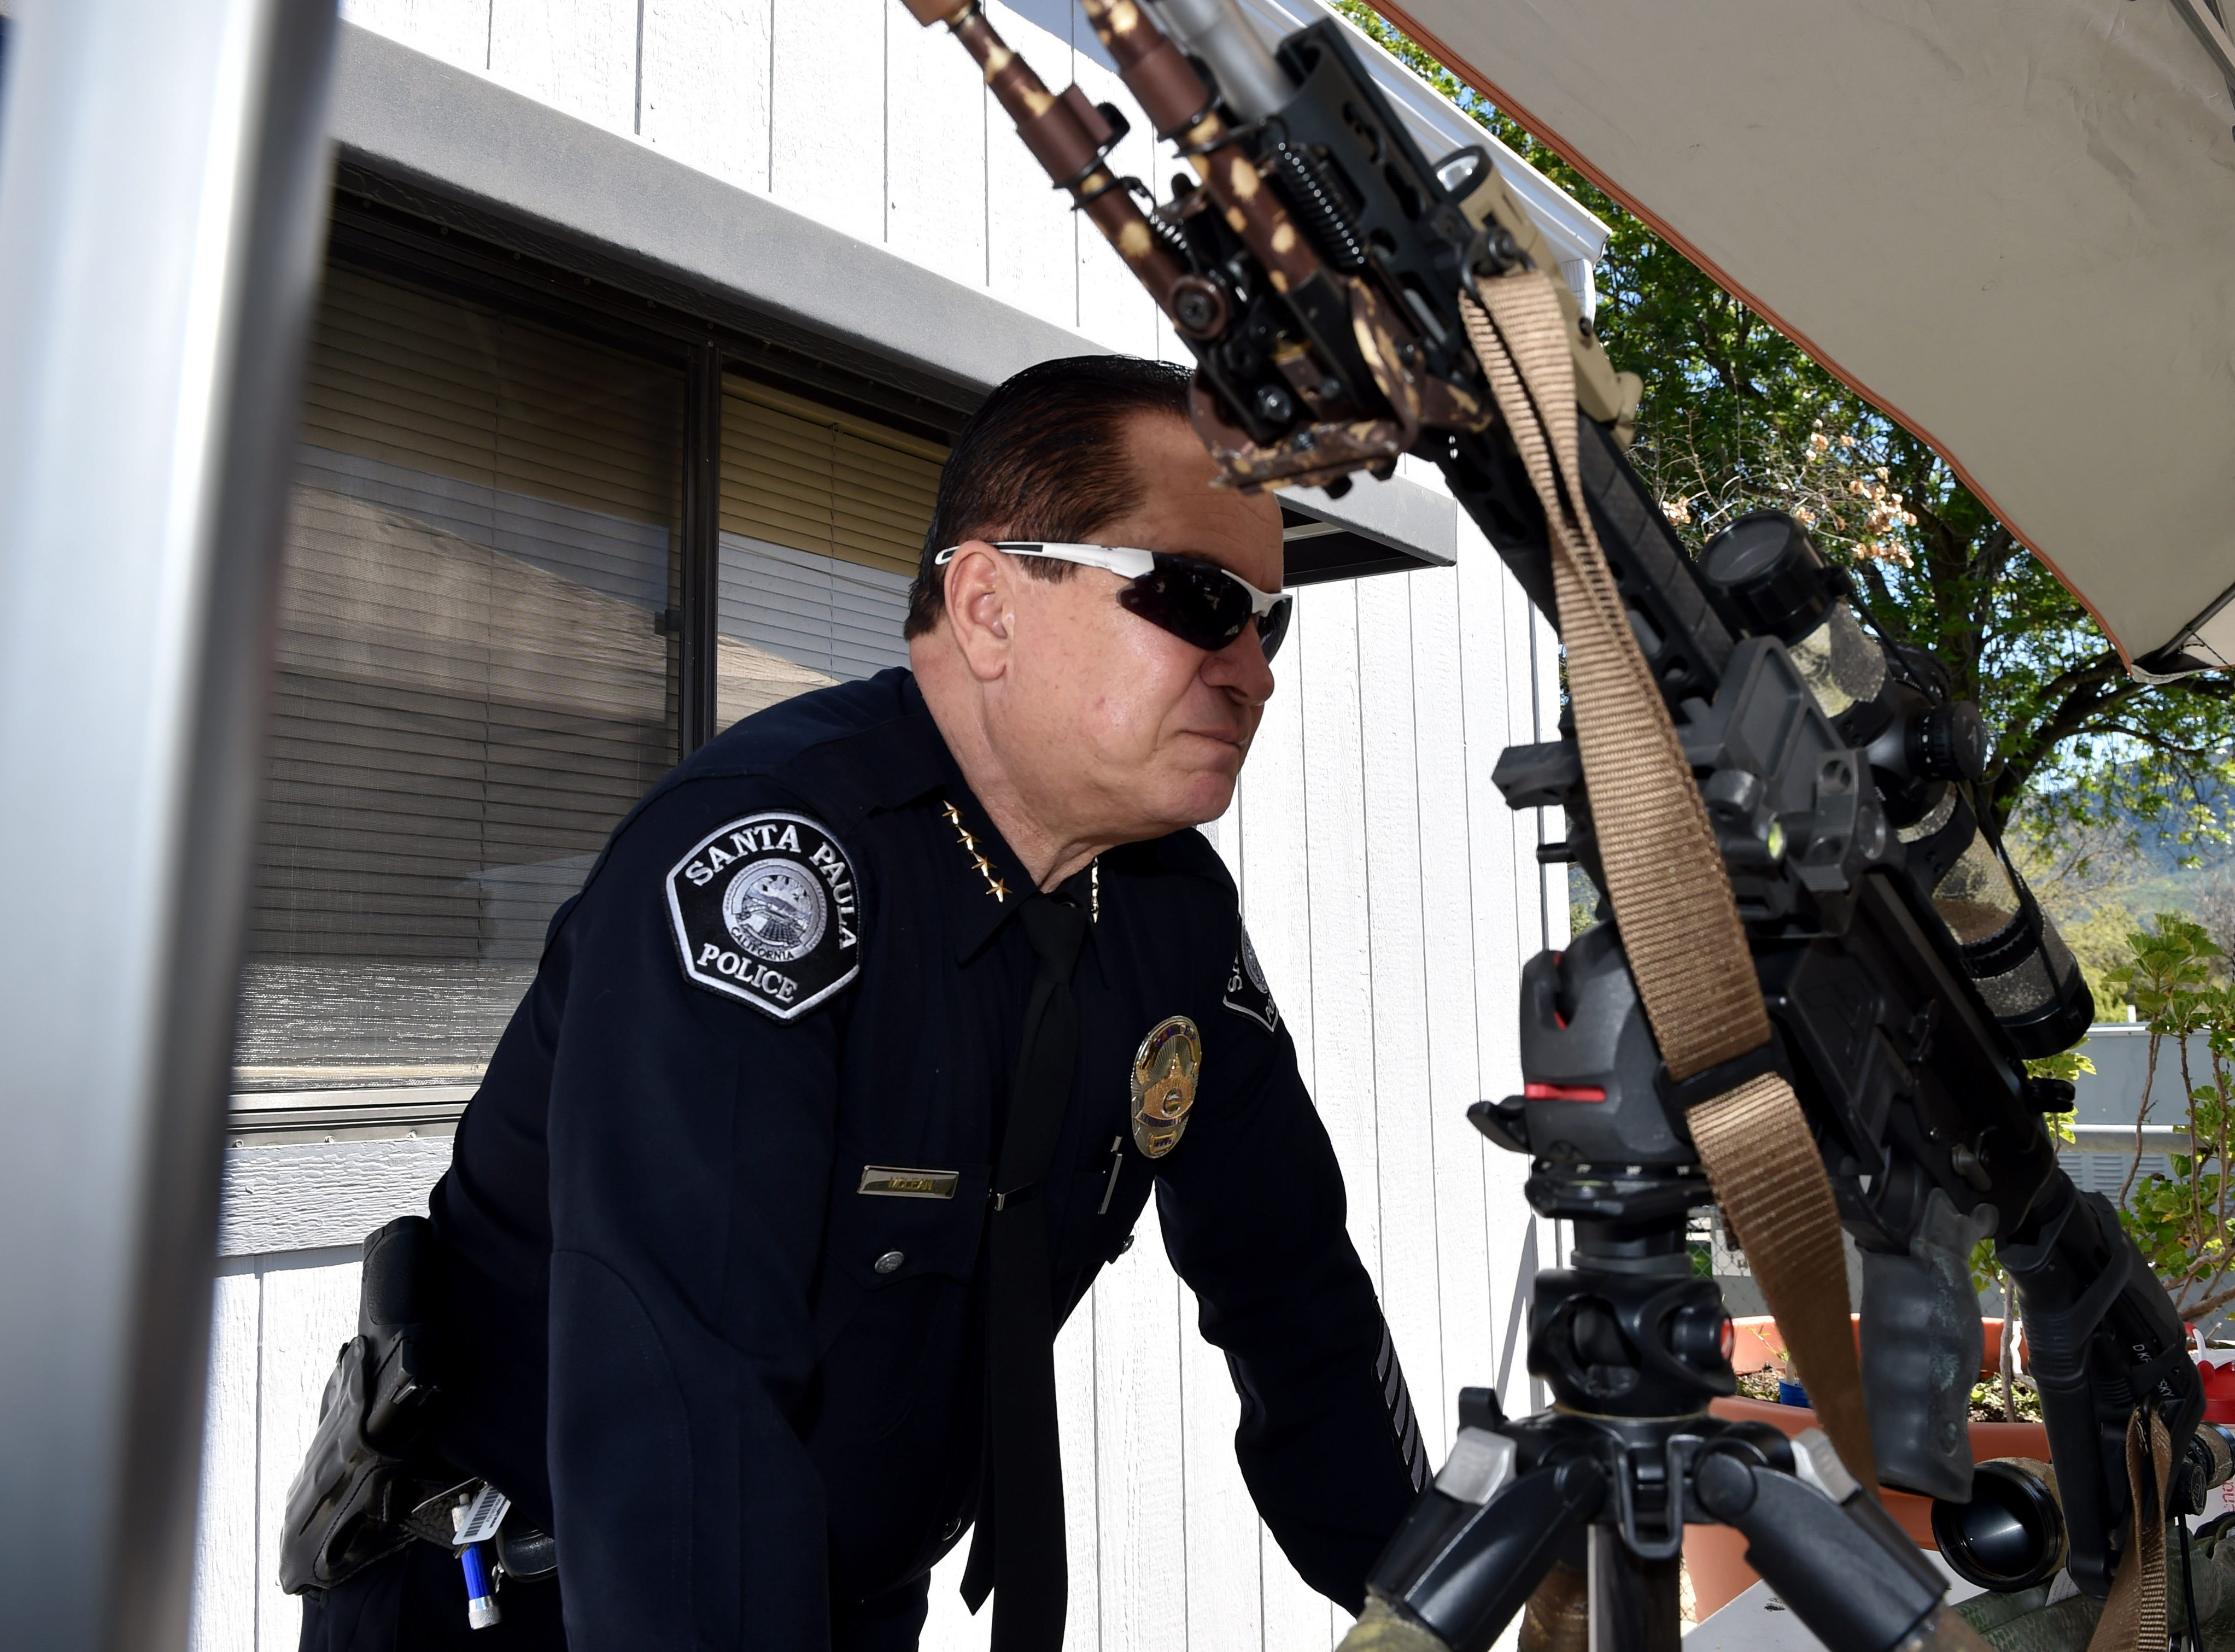 Santa Paula Police Chief Steven McLean visits a demonstration station during an event at his department's youth center on Friday.